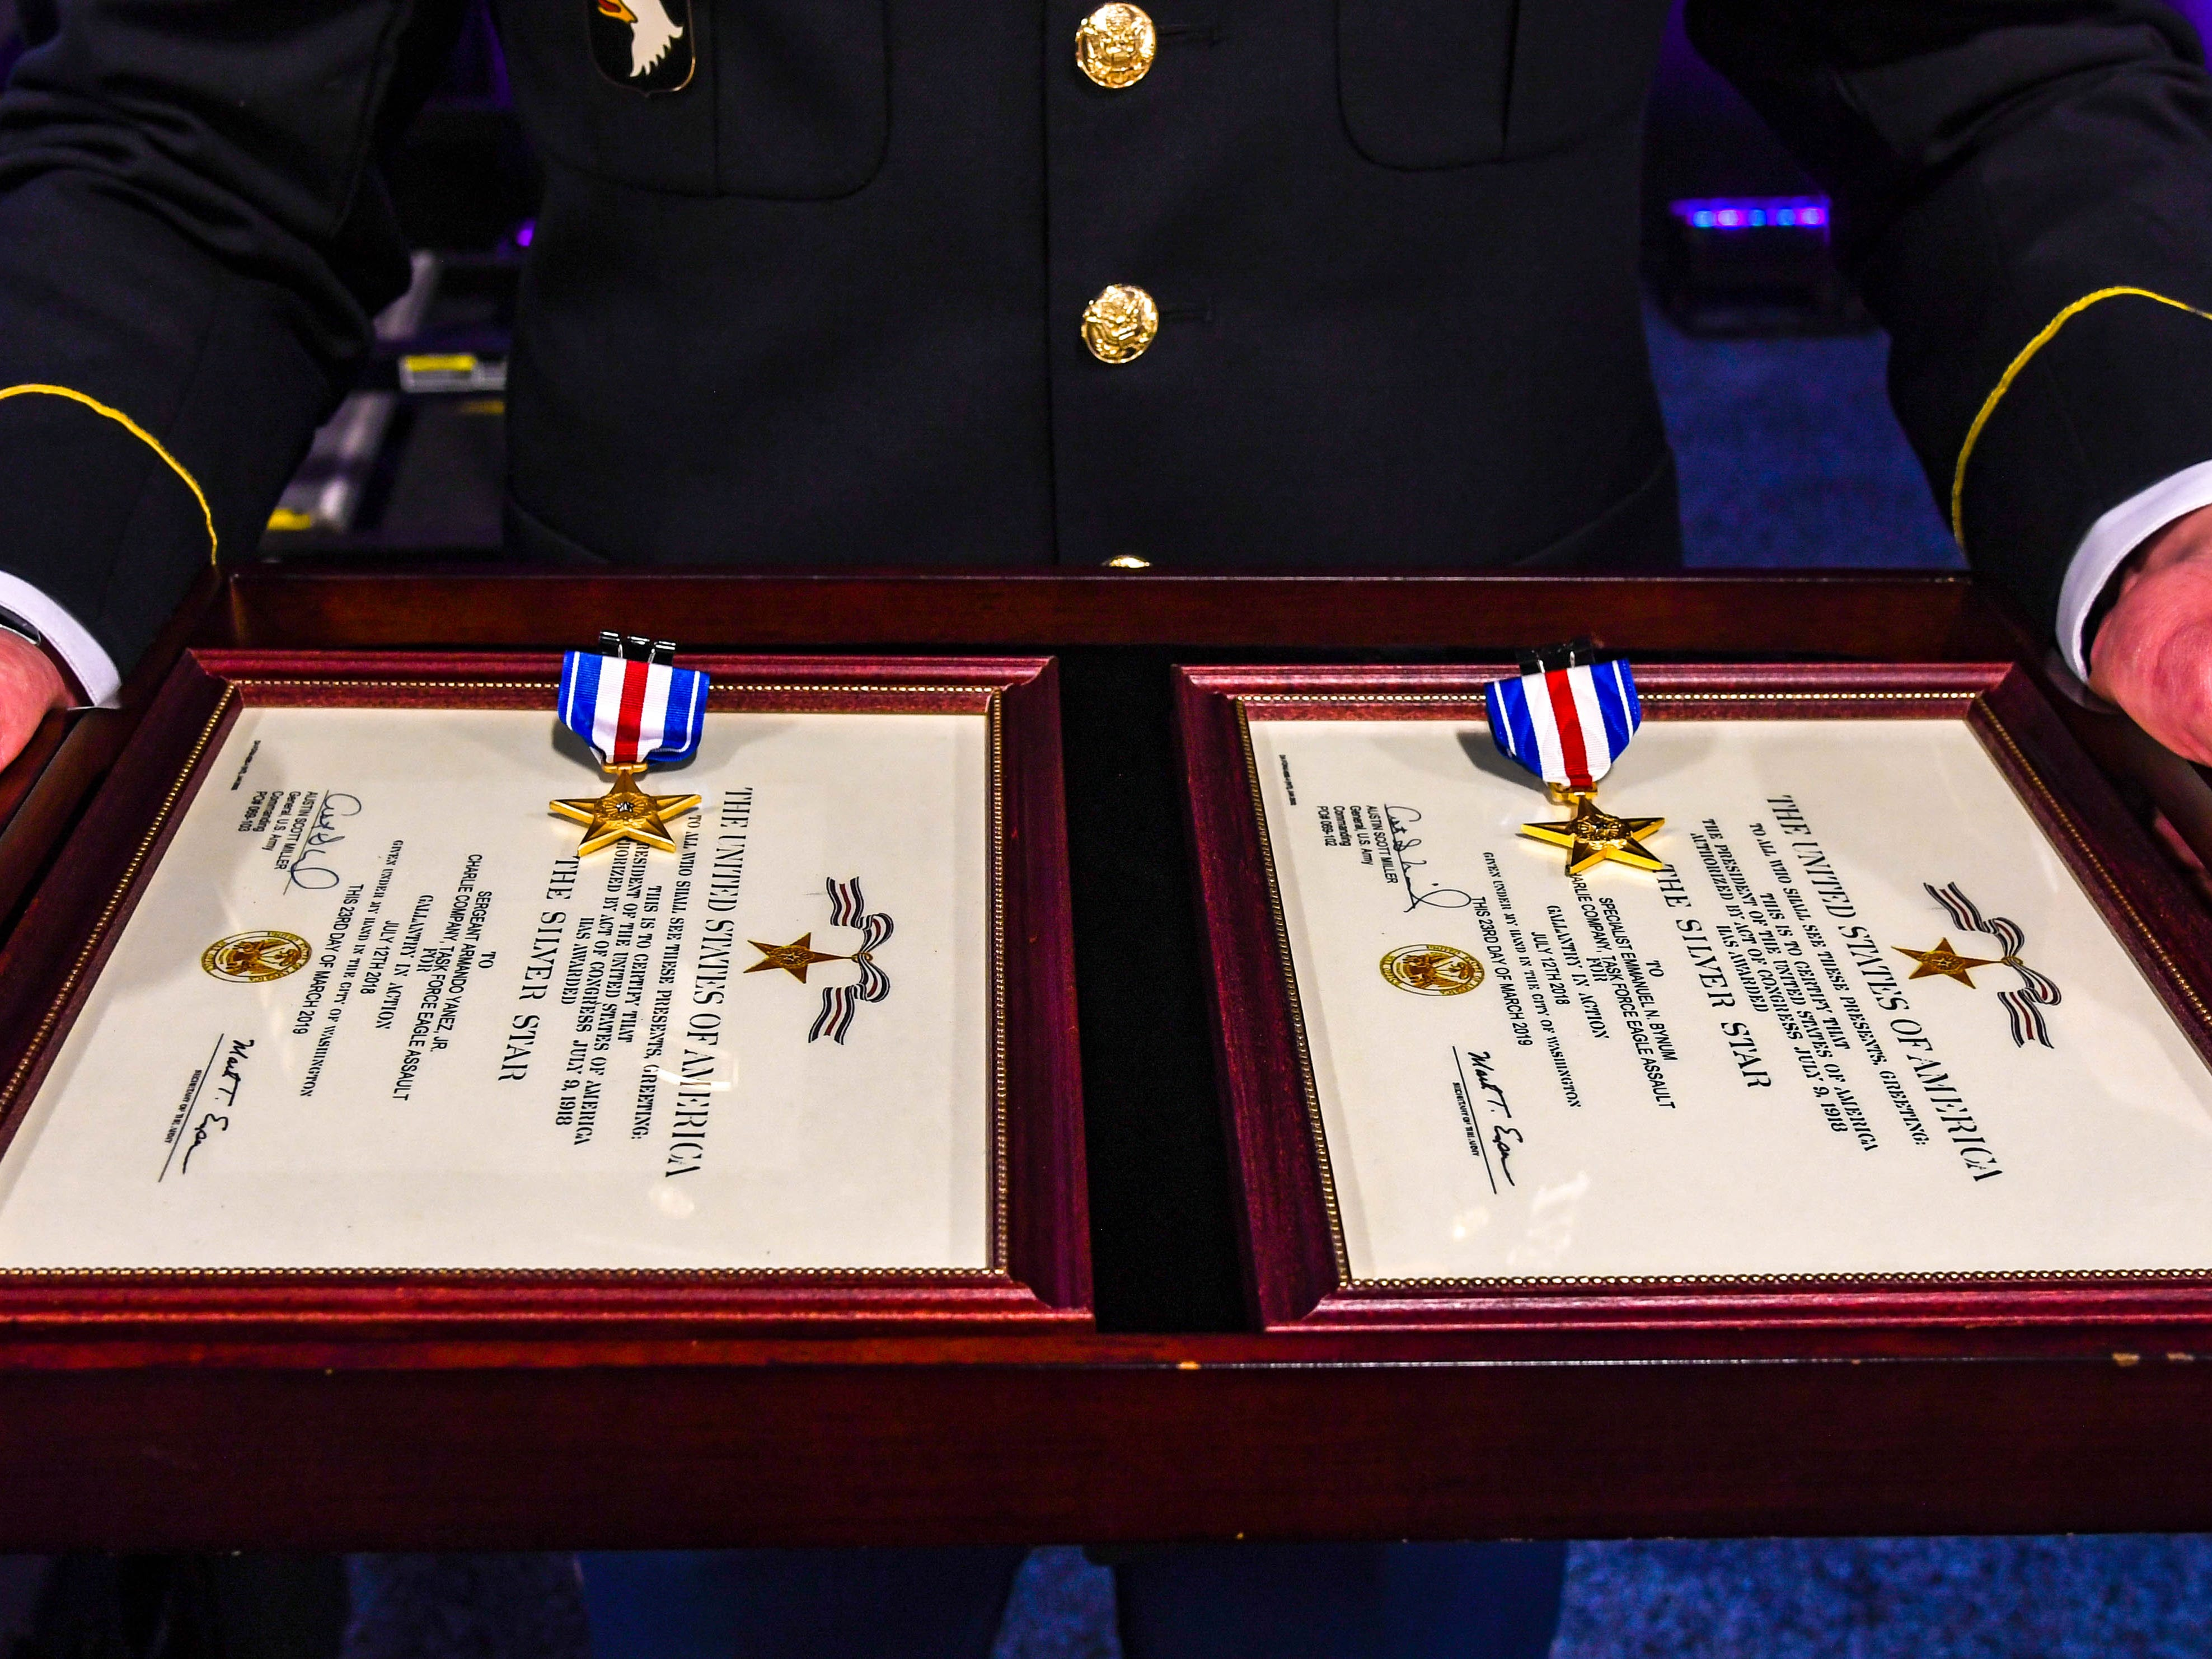 The citations for the Silver Stars awarded to Sgt. Armando Yanez and Sgt. Emmanuel Bynum of the 101st Airborne Combat Aviation Brigade on April 16 at the Army Aviation Association of America Summit 2019 in Nashville.